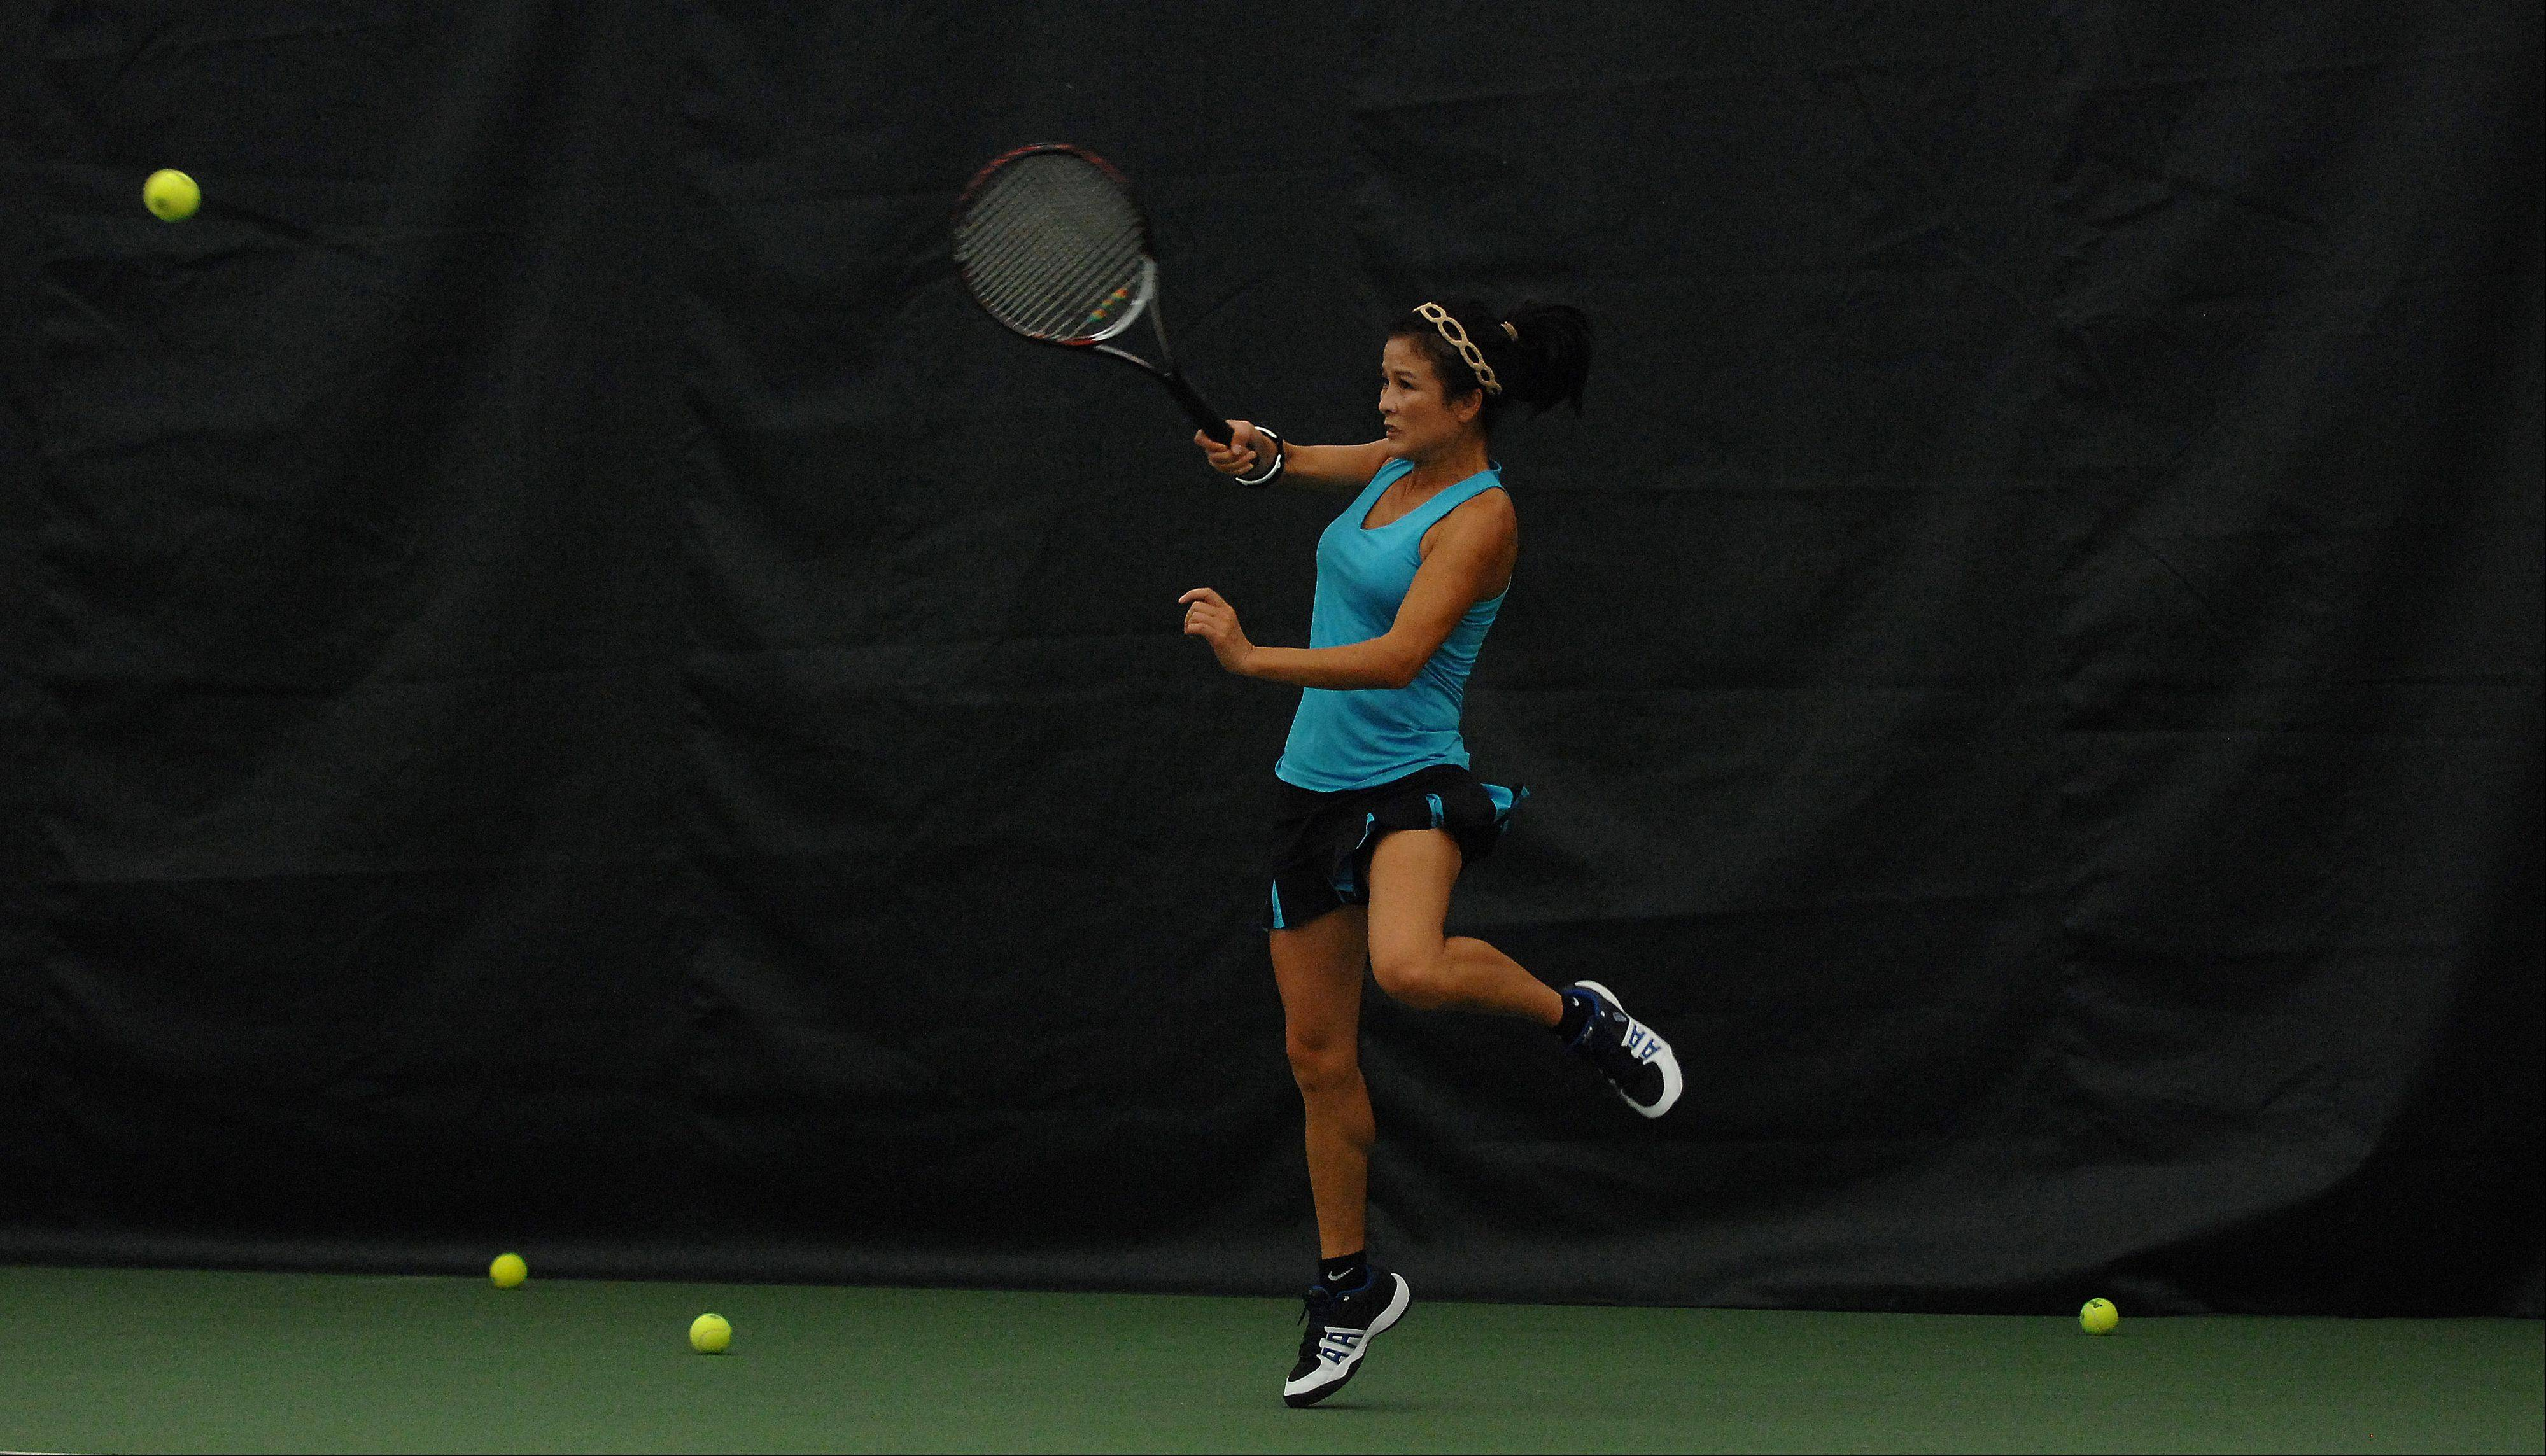 Lynch has a 'natural-born talent' for tennis, according to an ECC teammate.